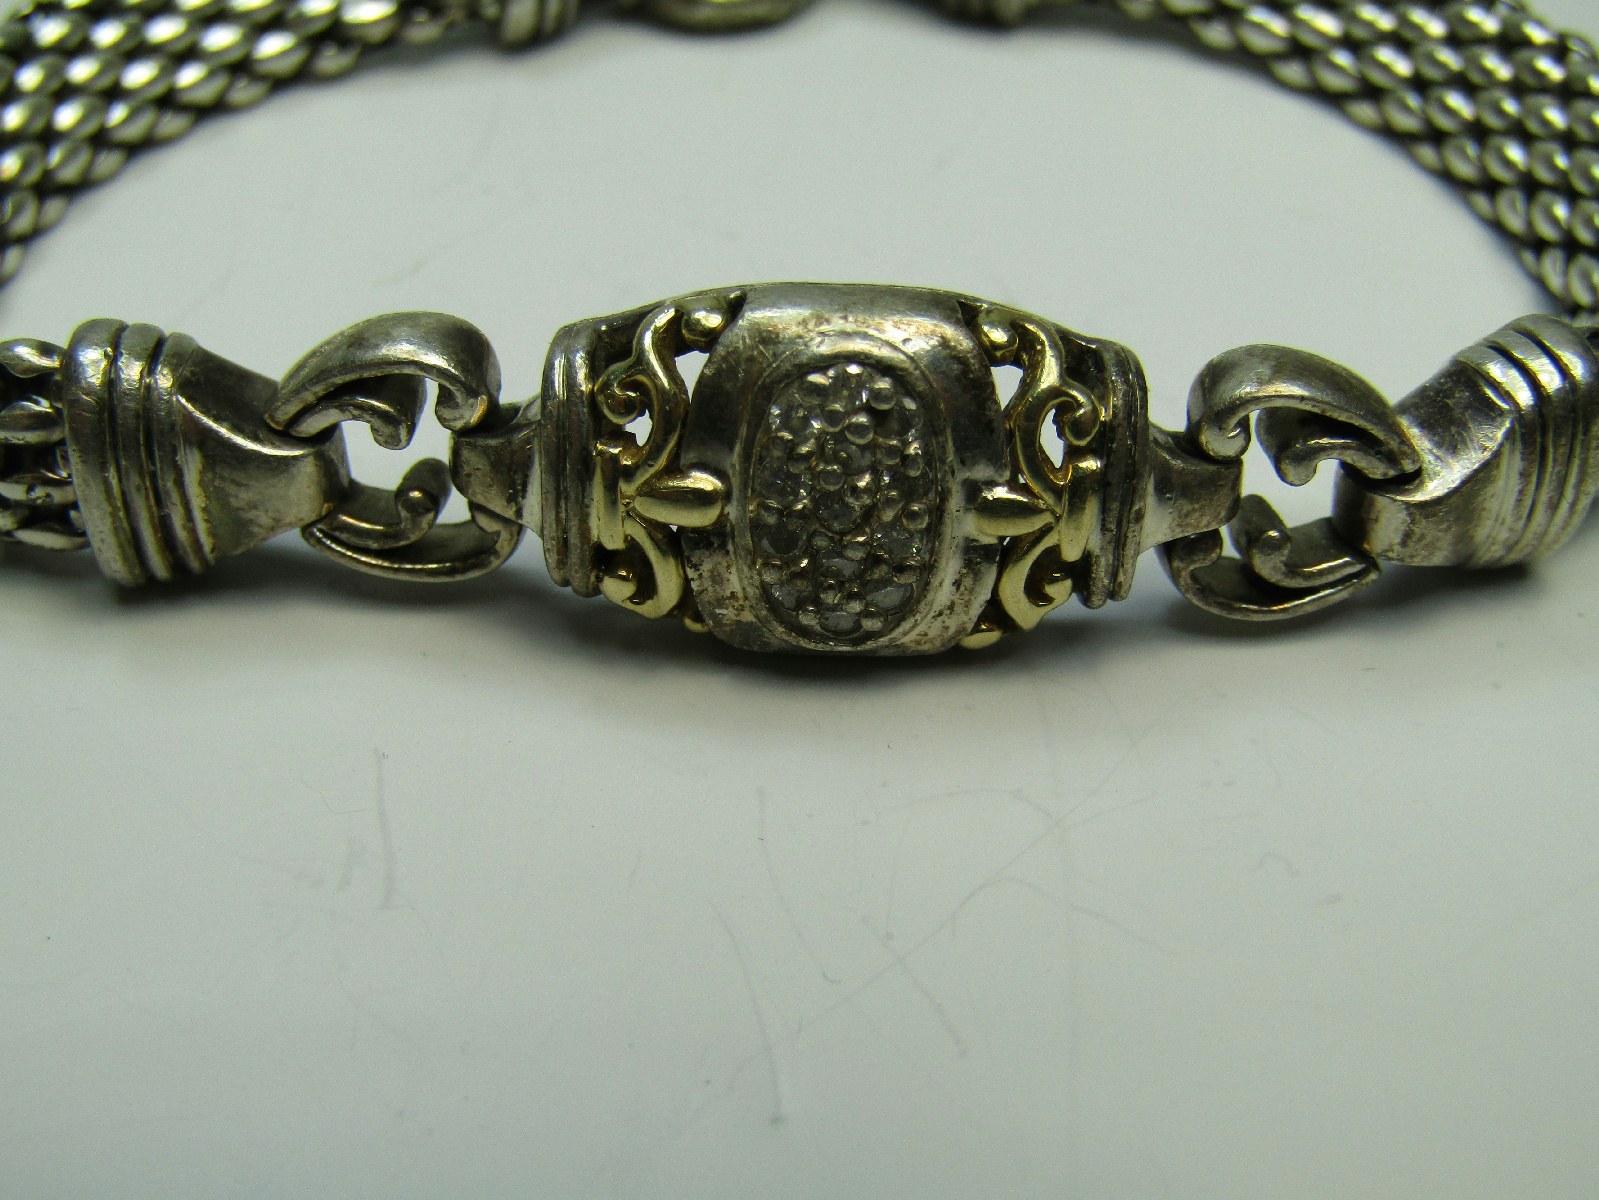 sterling silver jewelry chain link bracelet tested